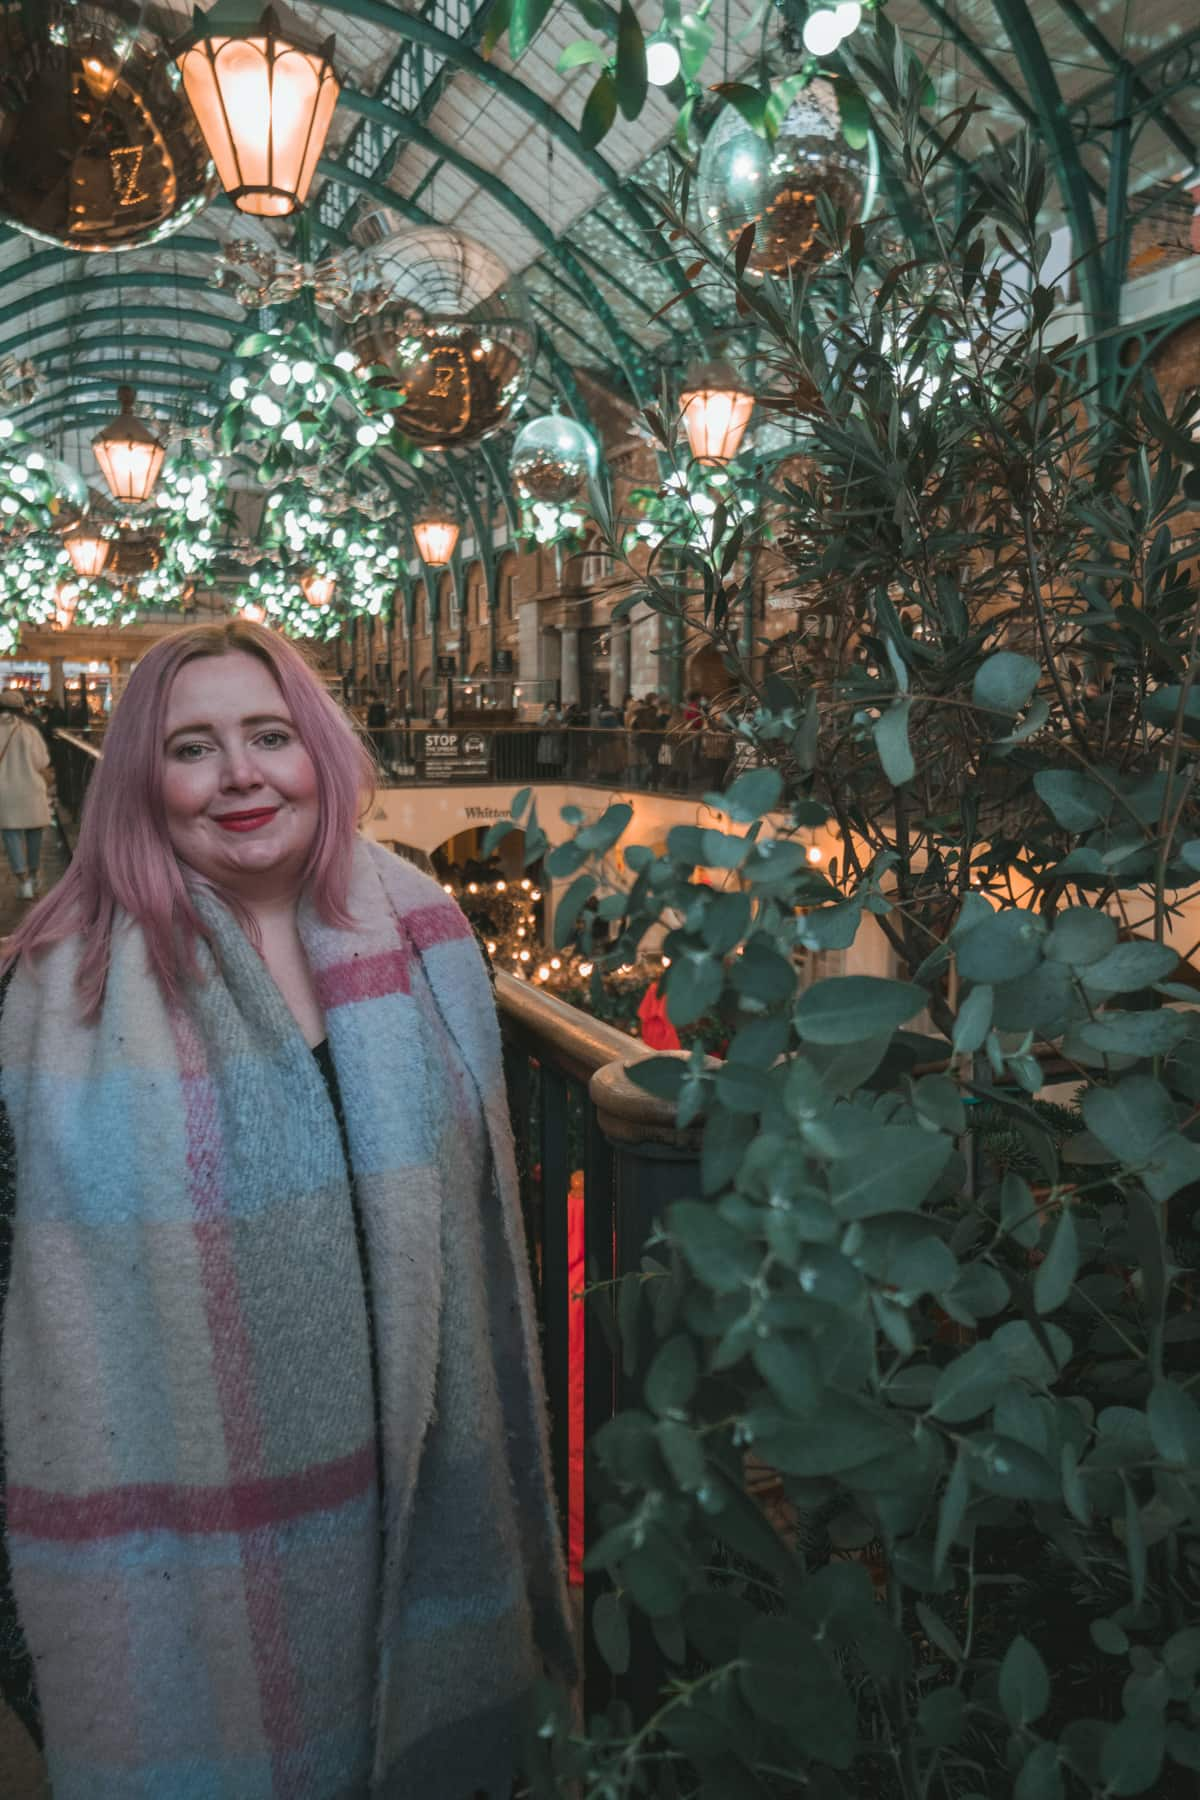 Kat standing in front of the Christmas lights in Covent Garden